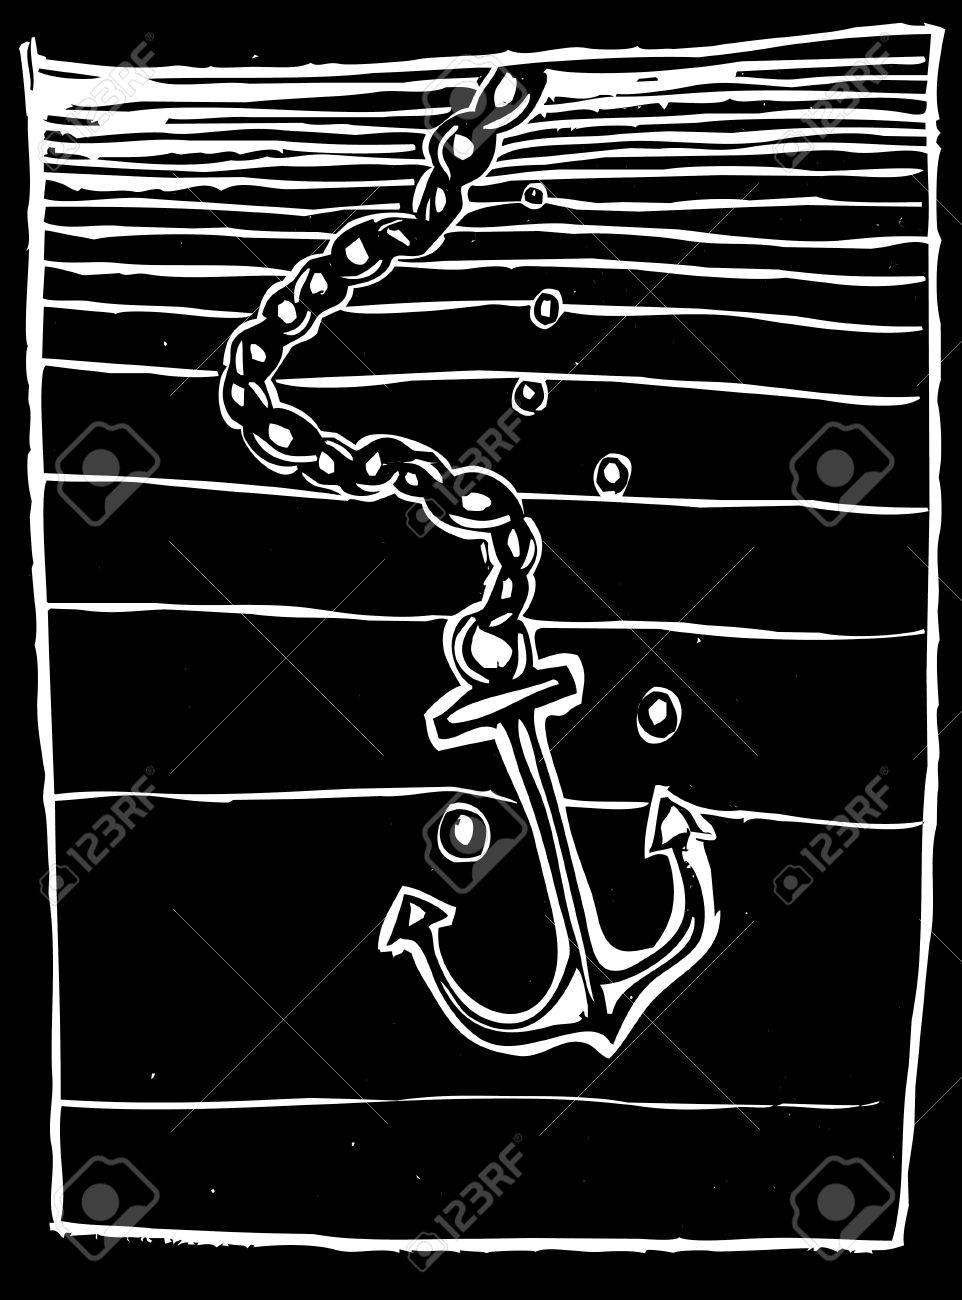 Woodcut style Anchor being dropped into a dark ocean. Stock Vector - 8079746